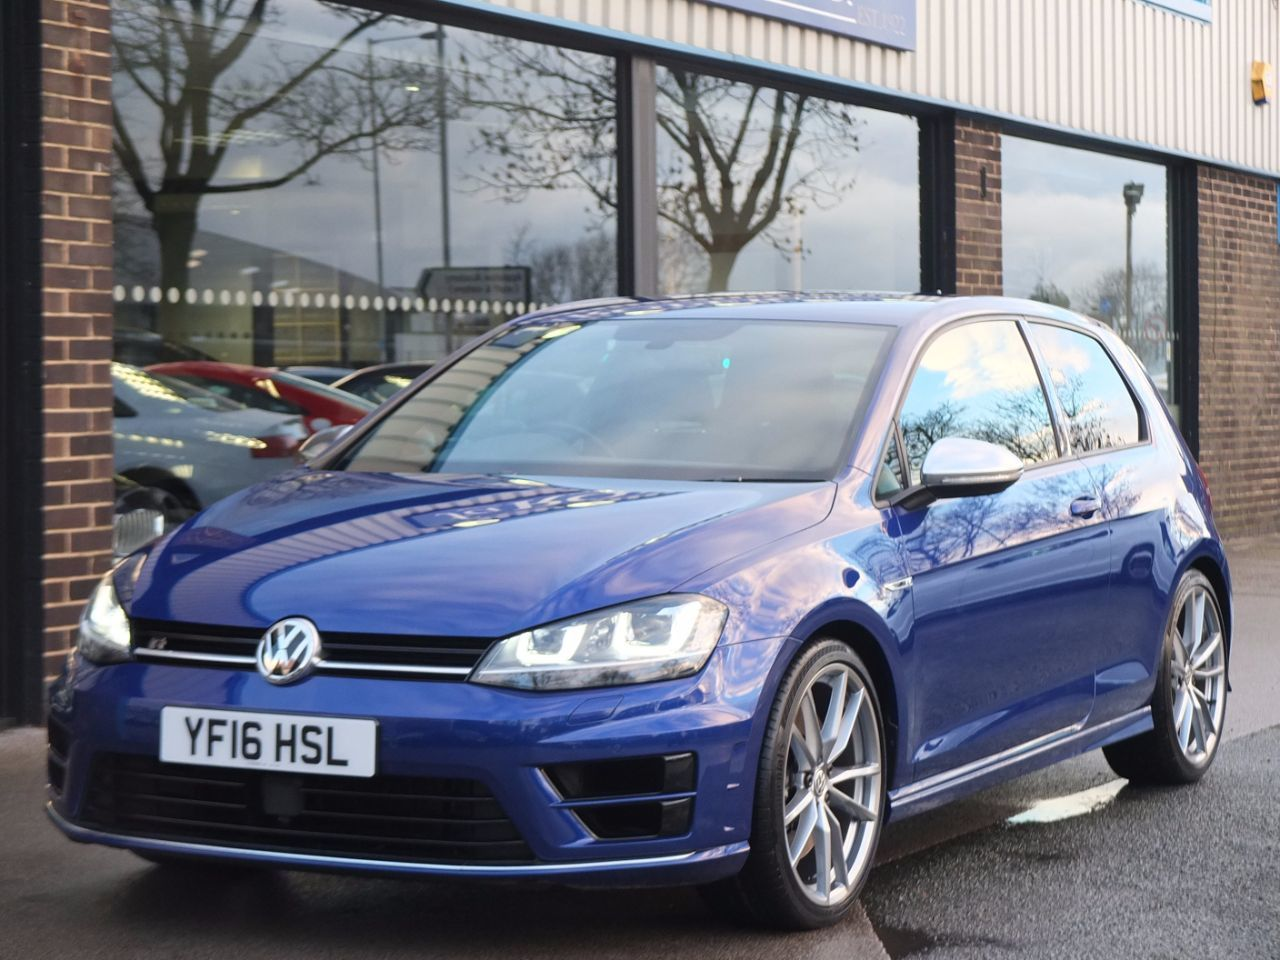 Volkswagen Golf 2.0 TSI R 3 door Manual 6 Speed Hatchback Petrol Lapiz Blue MetallicVolkswagen Golf 2.0 TSI R 3 door Manual 6 Speed Hatchback Petrol Lapiz Blue Metallic at fa Roper Ltd Bradford